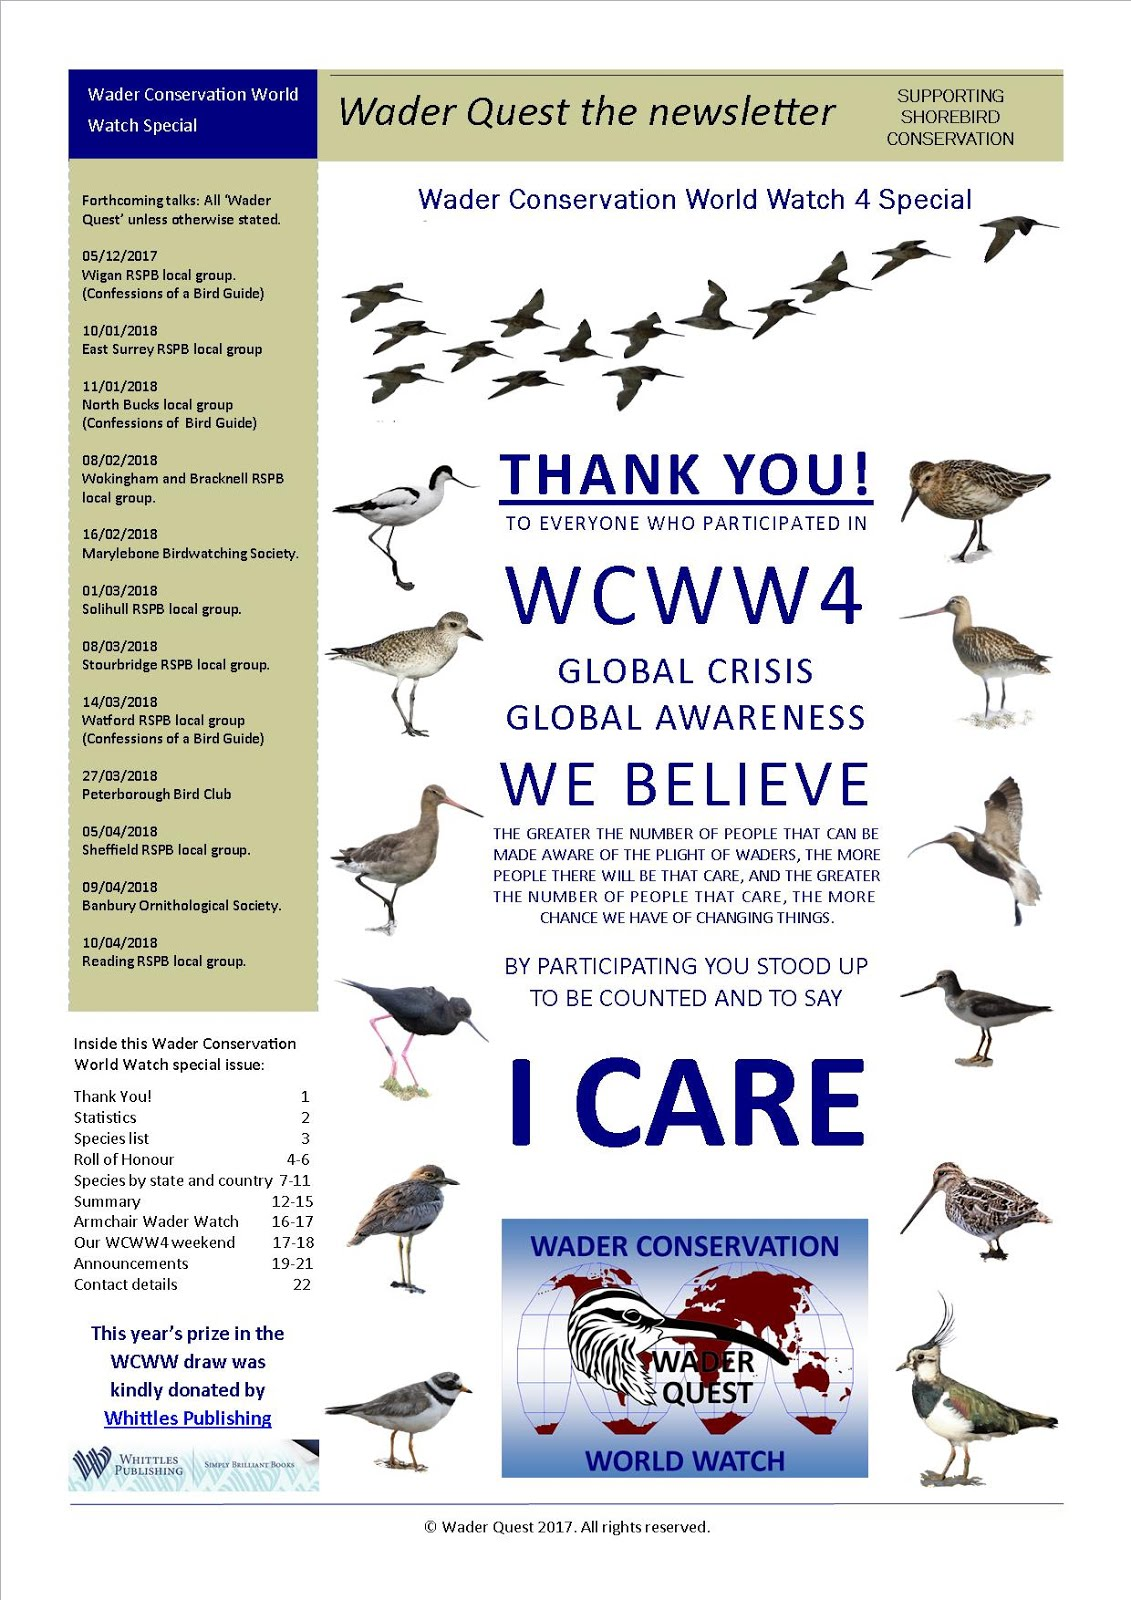 Wader Conservation World Watch special newsletter